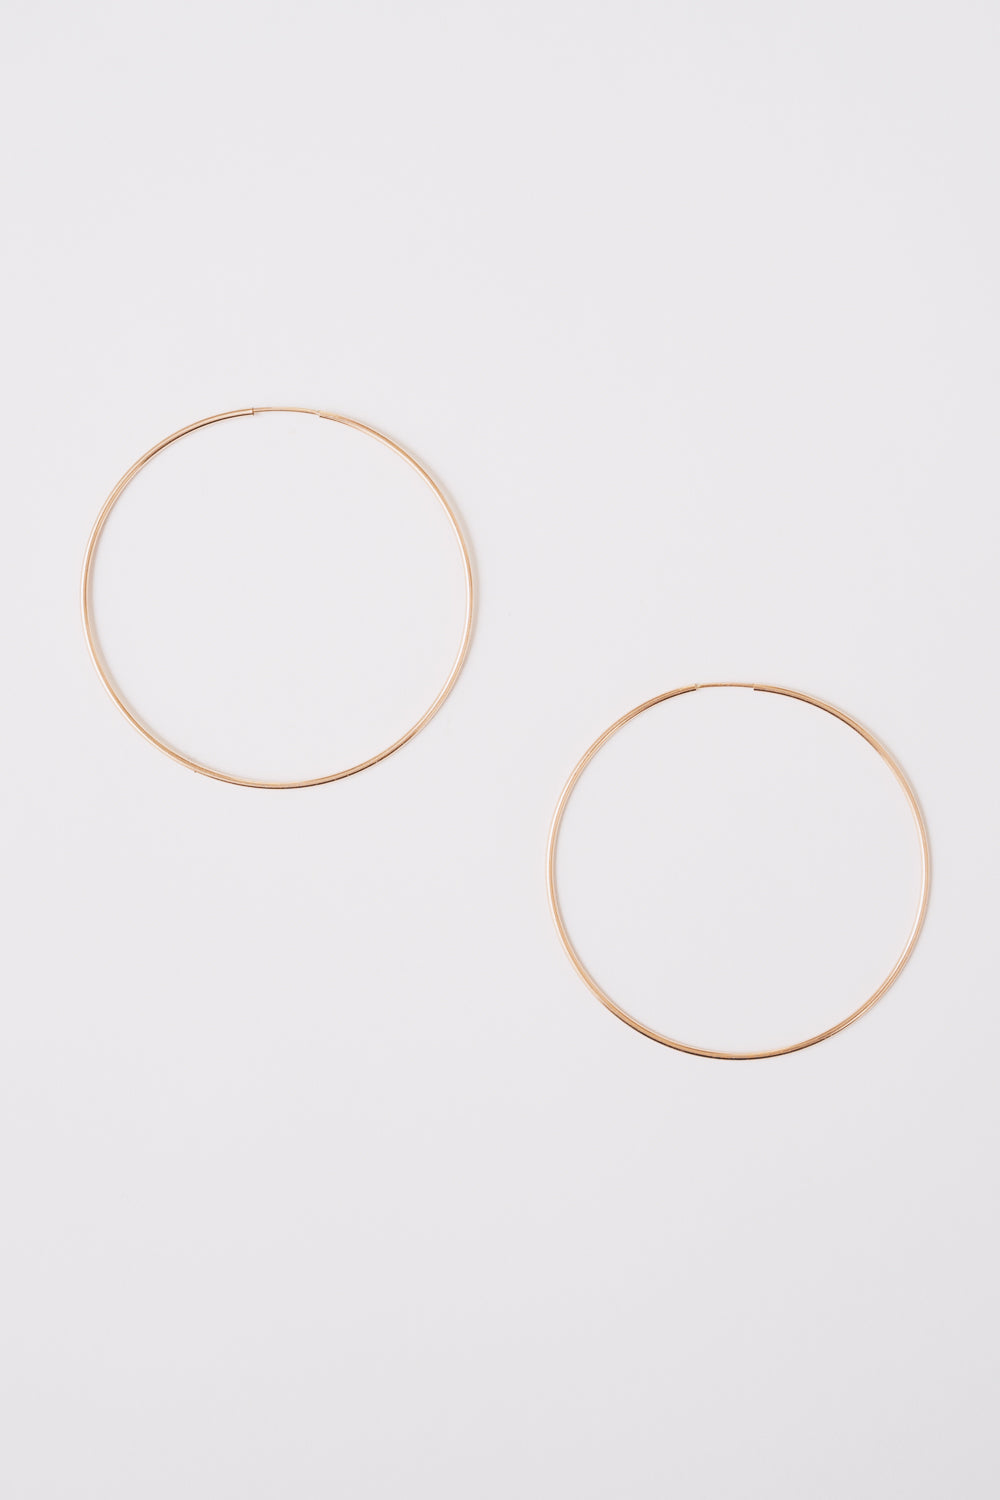 lightweight thin tubing 14k gold fill hoop earrings